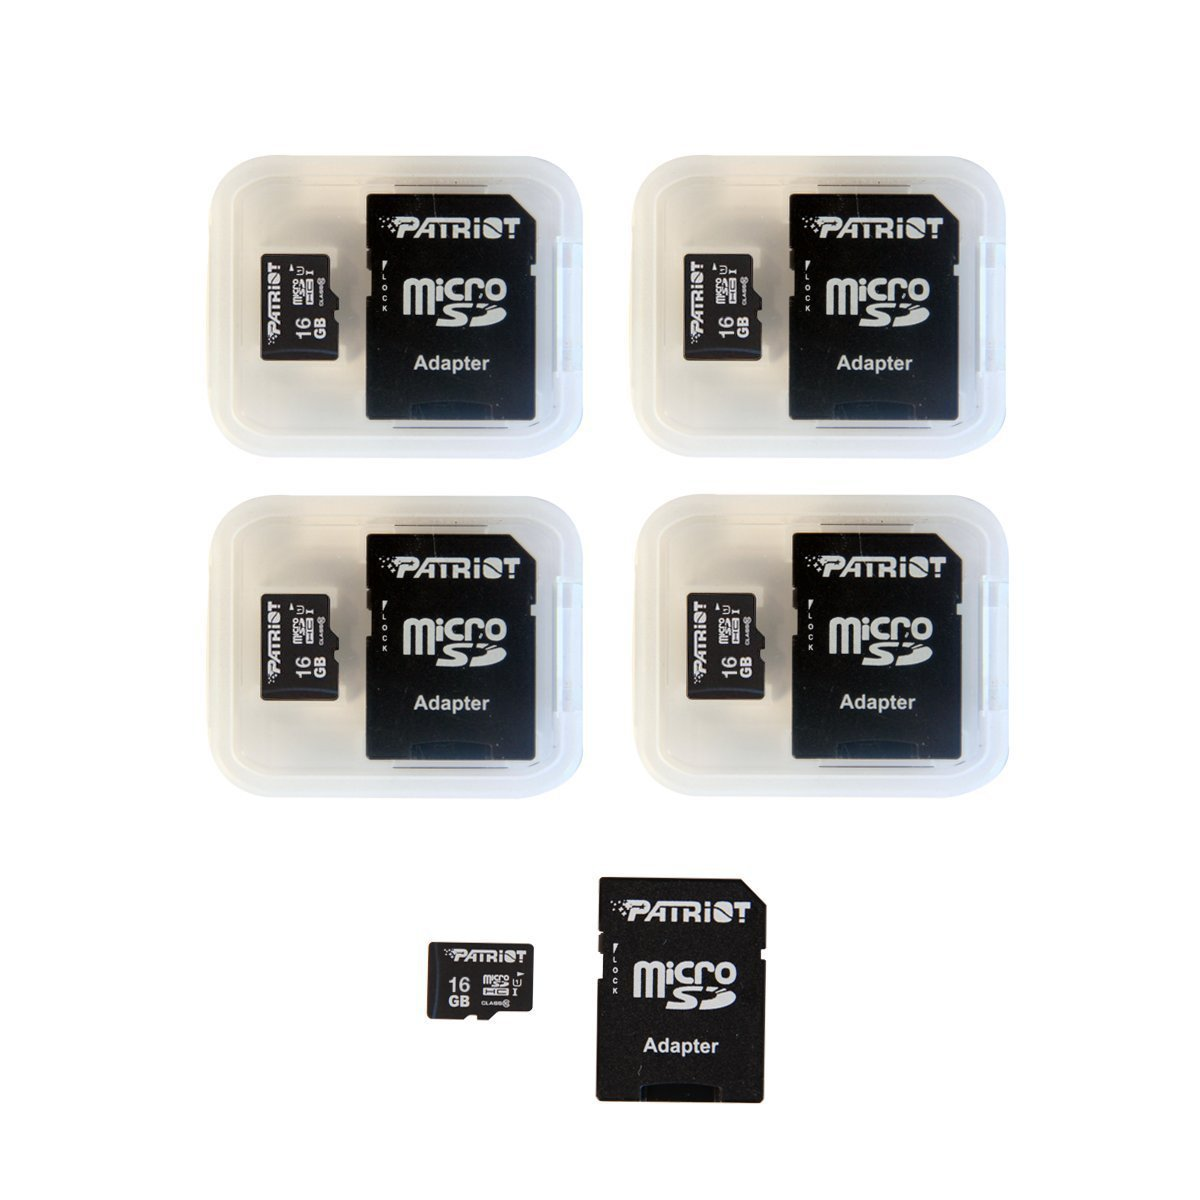 Patriot LX Series 16Gb Micro Sdhc - Class 10 Uhs-I - 5 Pack (Psf16Gmcsdhc5Pk)